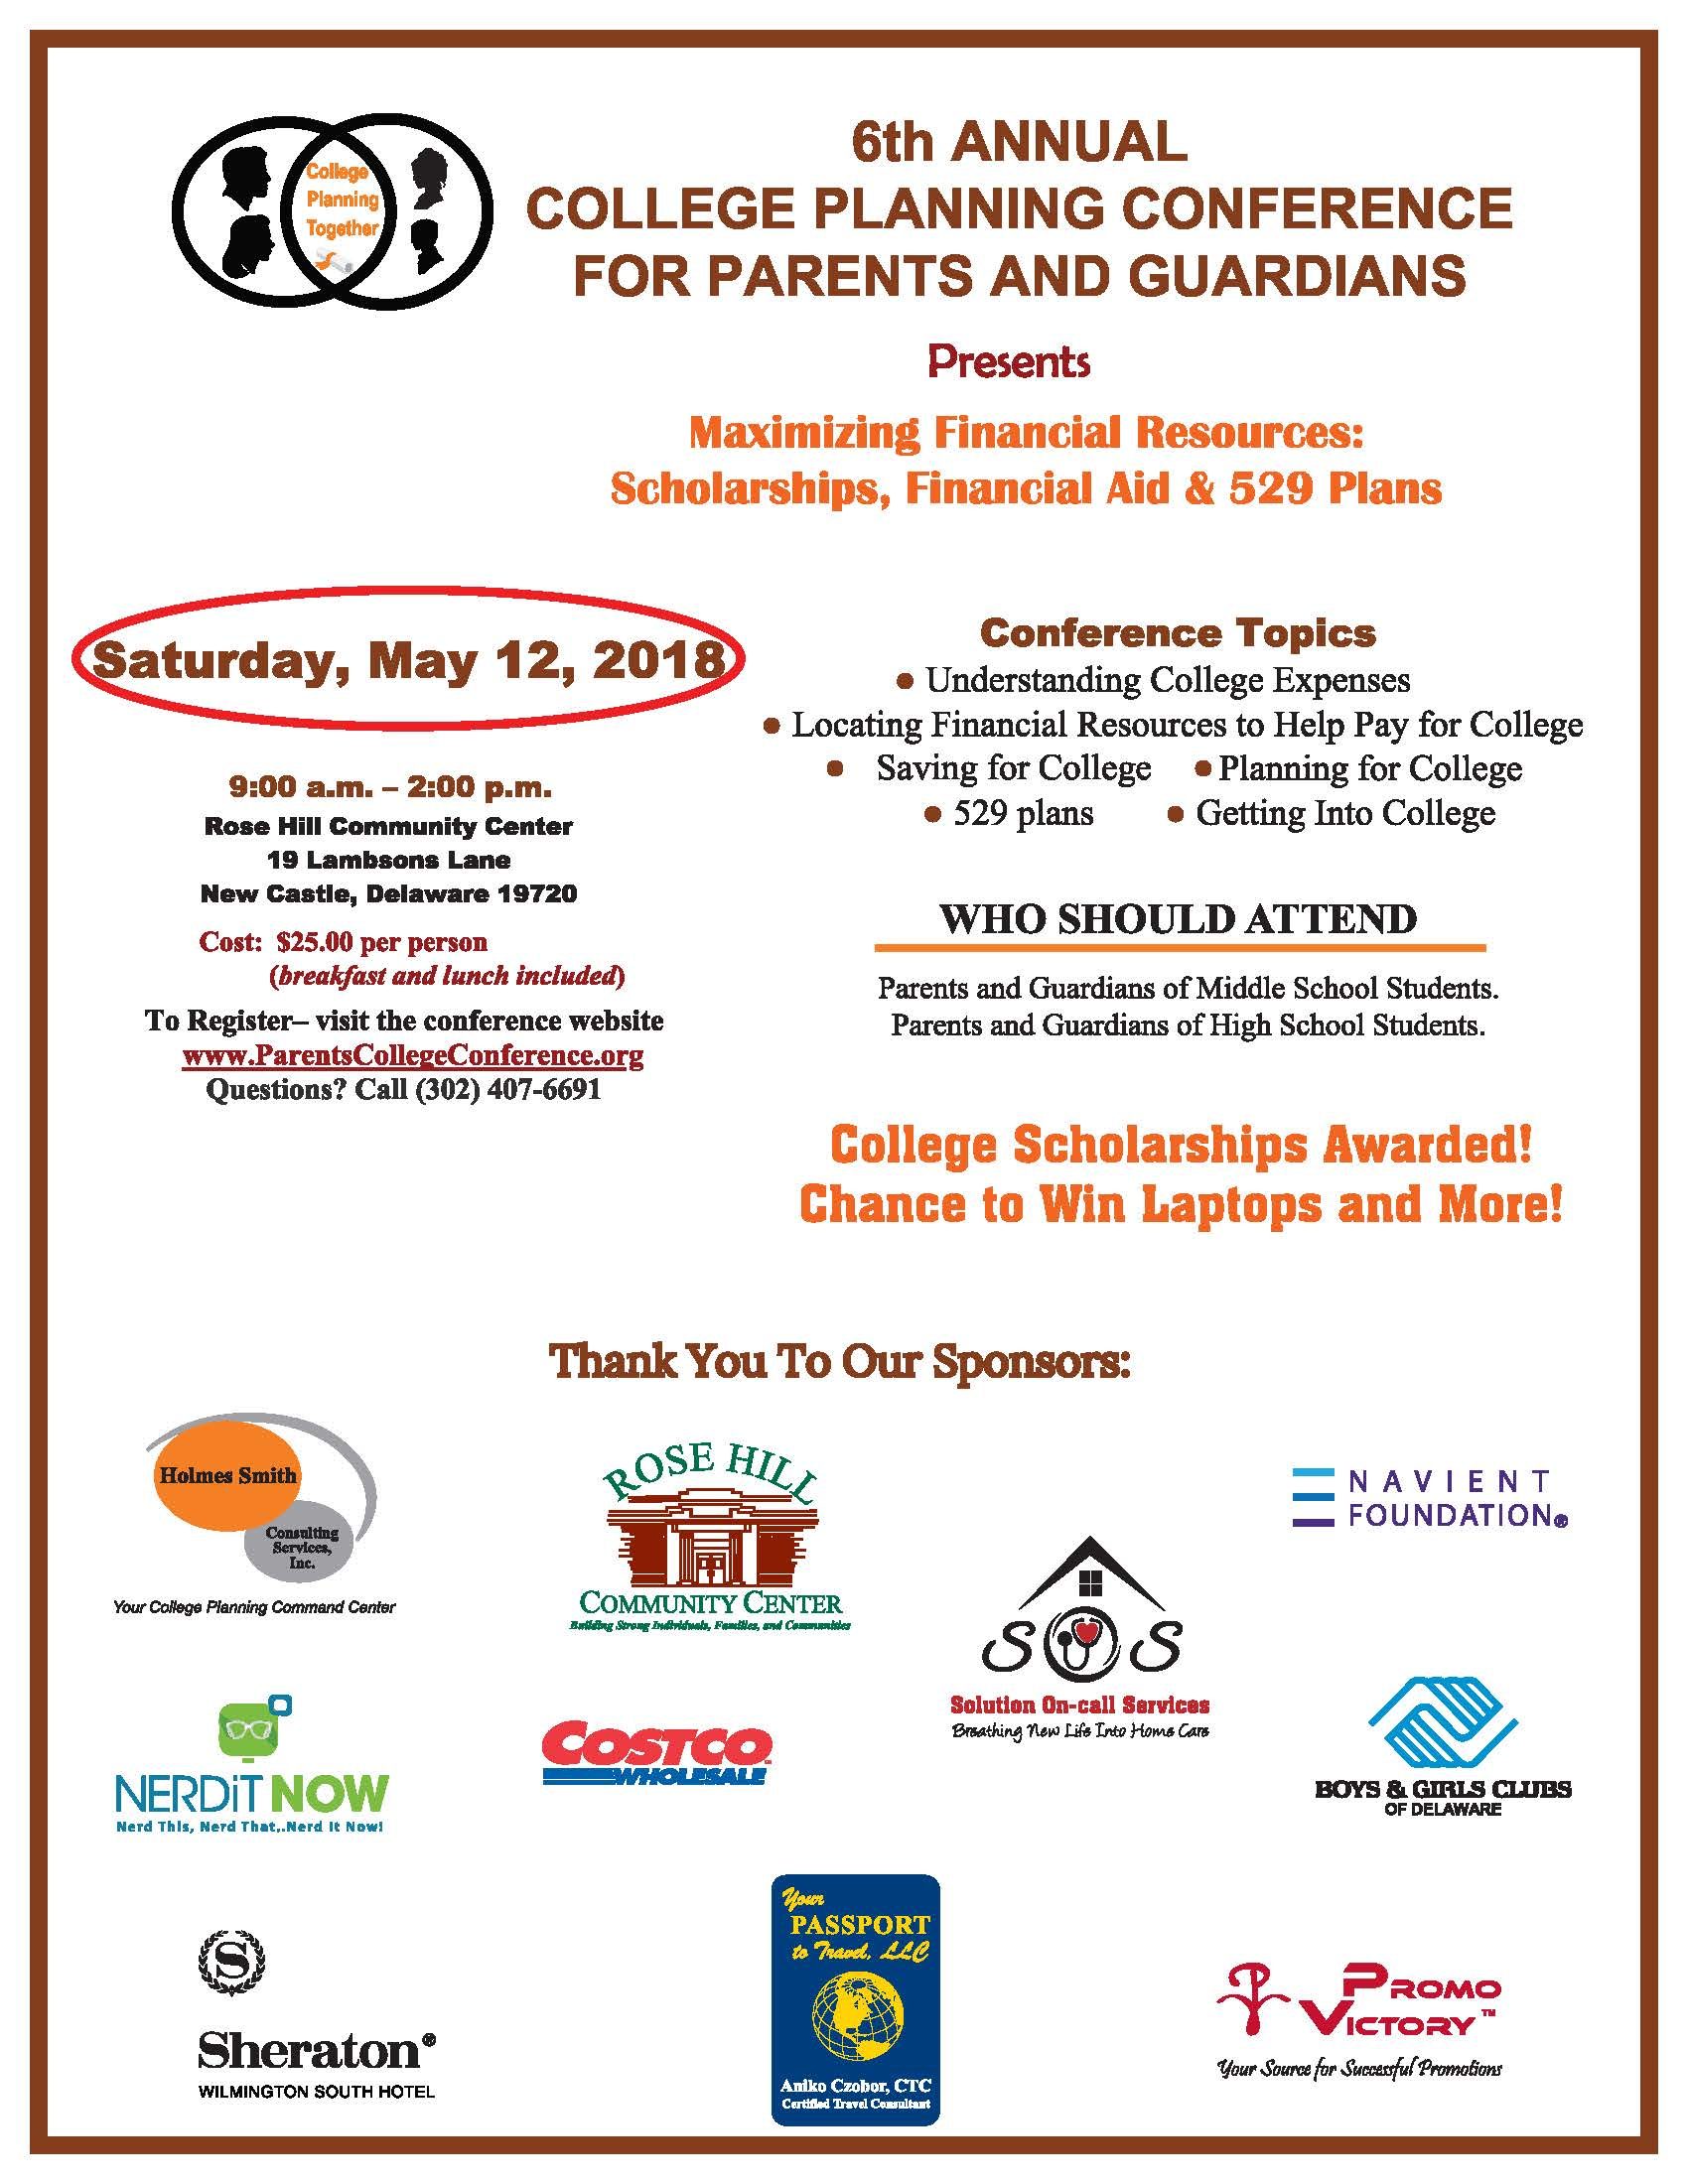 6th Annual College Planning Conference for Parents & Guardians